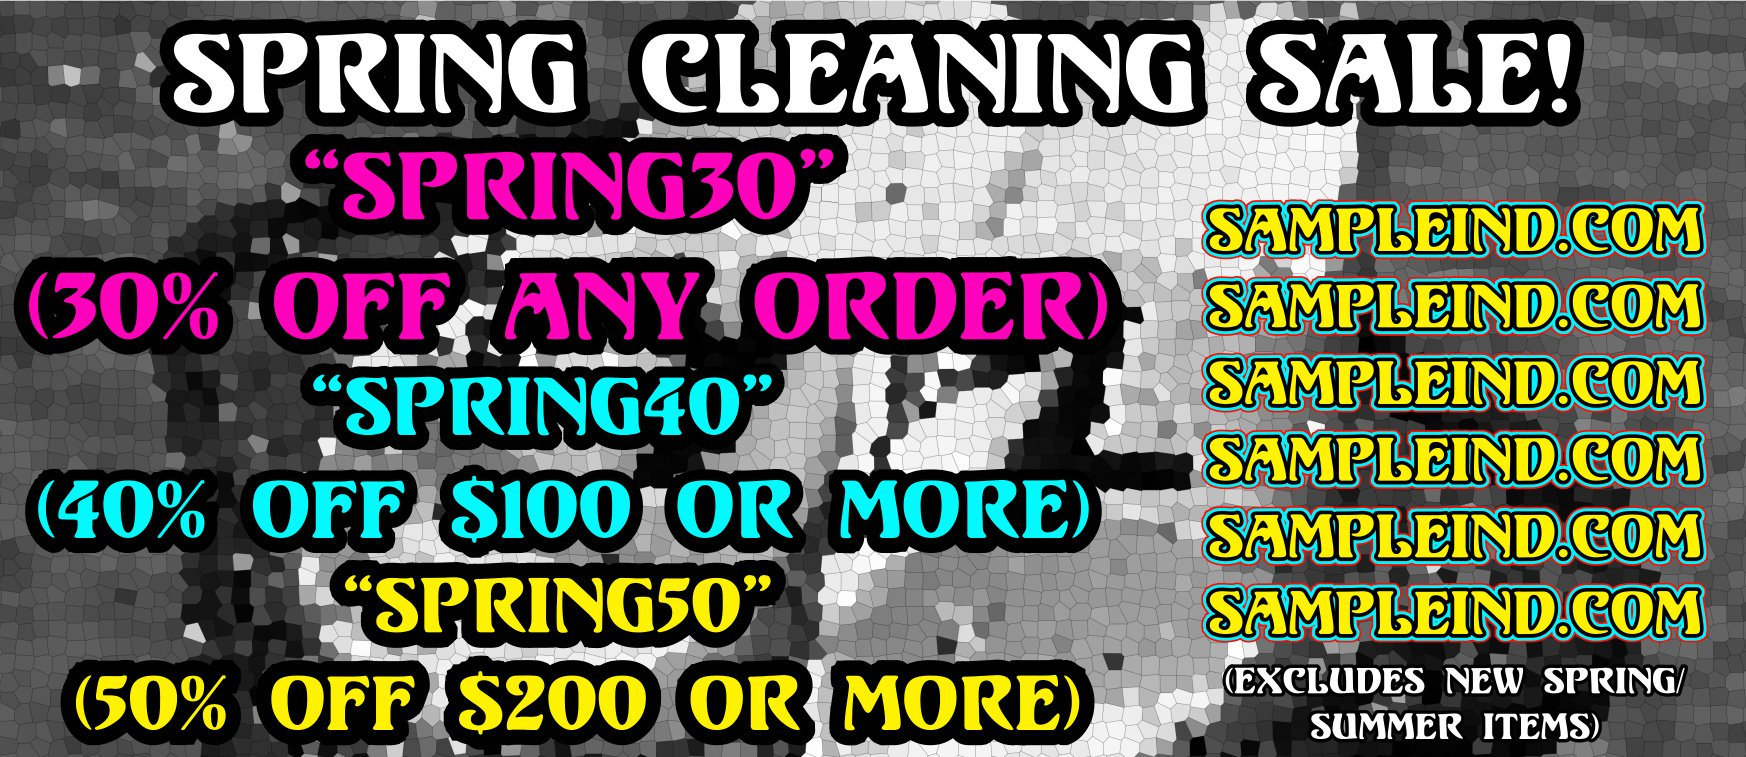 Sample Industries On Twitter Spring Sale Is Now Live Use Code Spring30 For 30 Off Spring40 40 Spring50 50